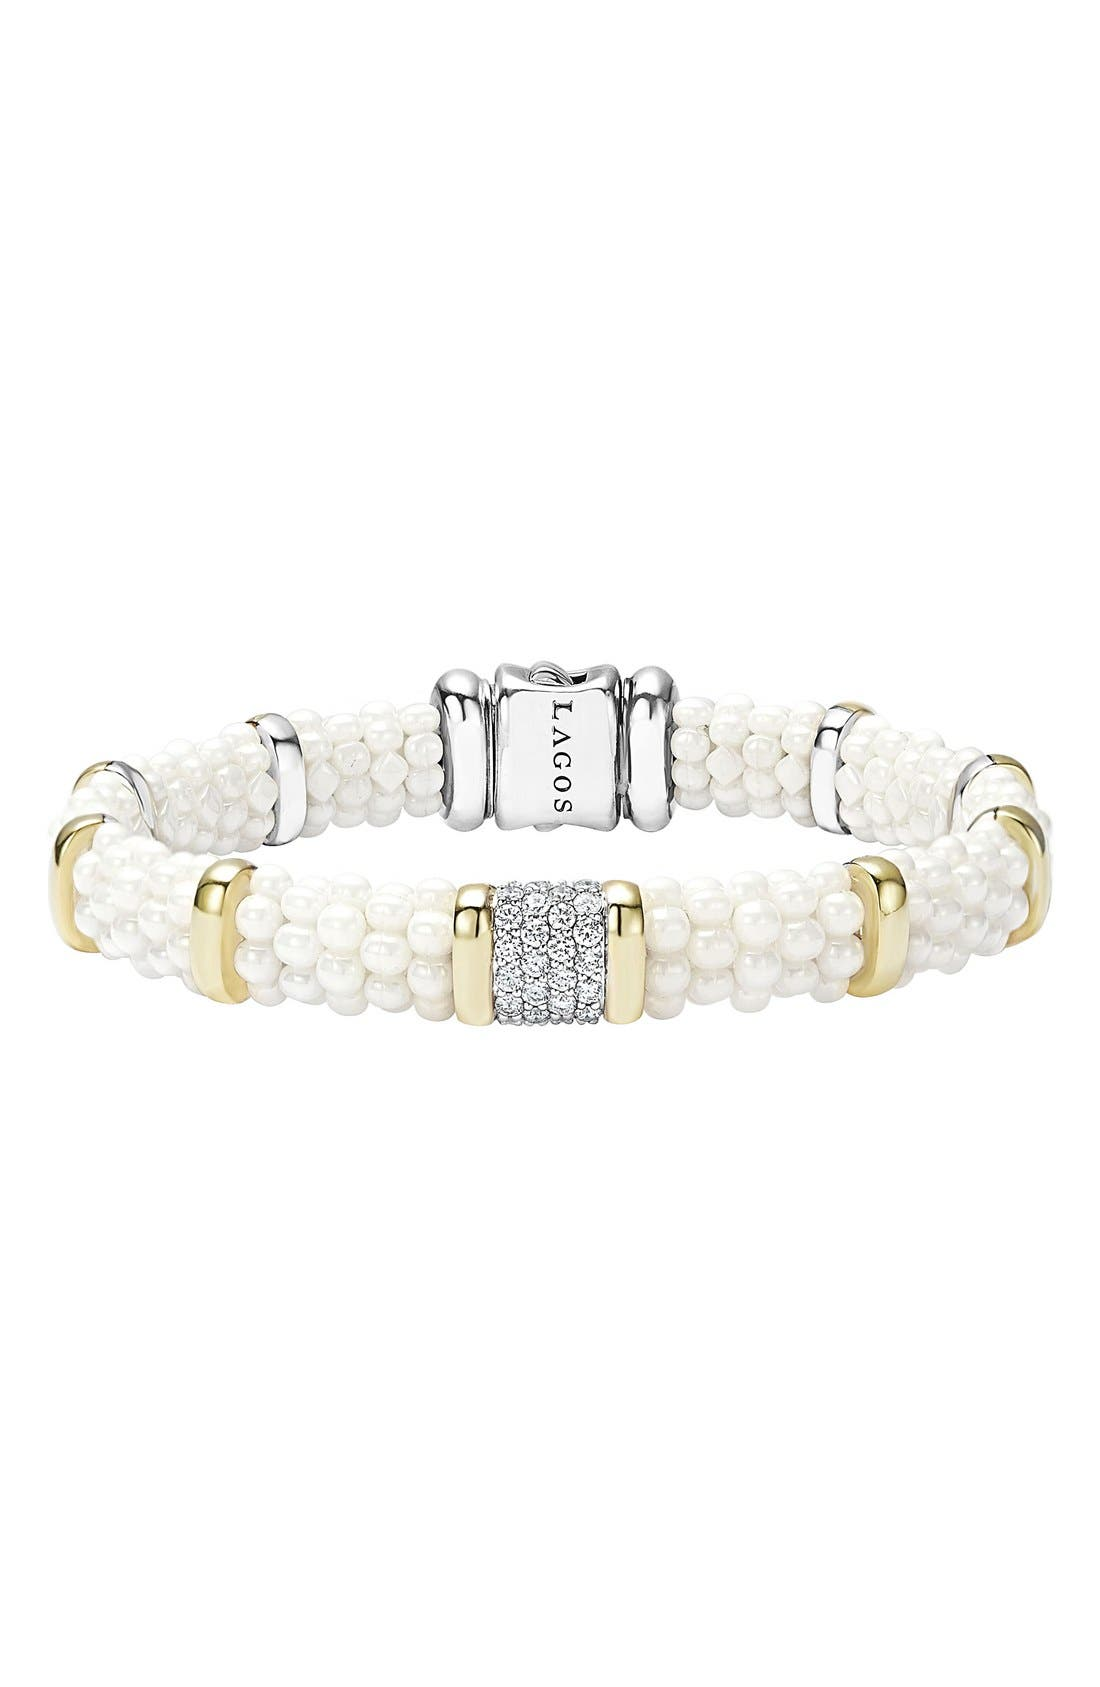 LAGOS 'White Caviar' Diamond Station Bracelet